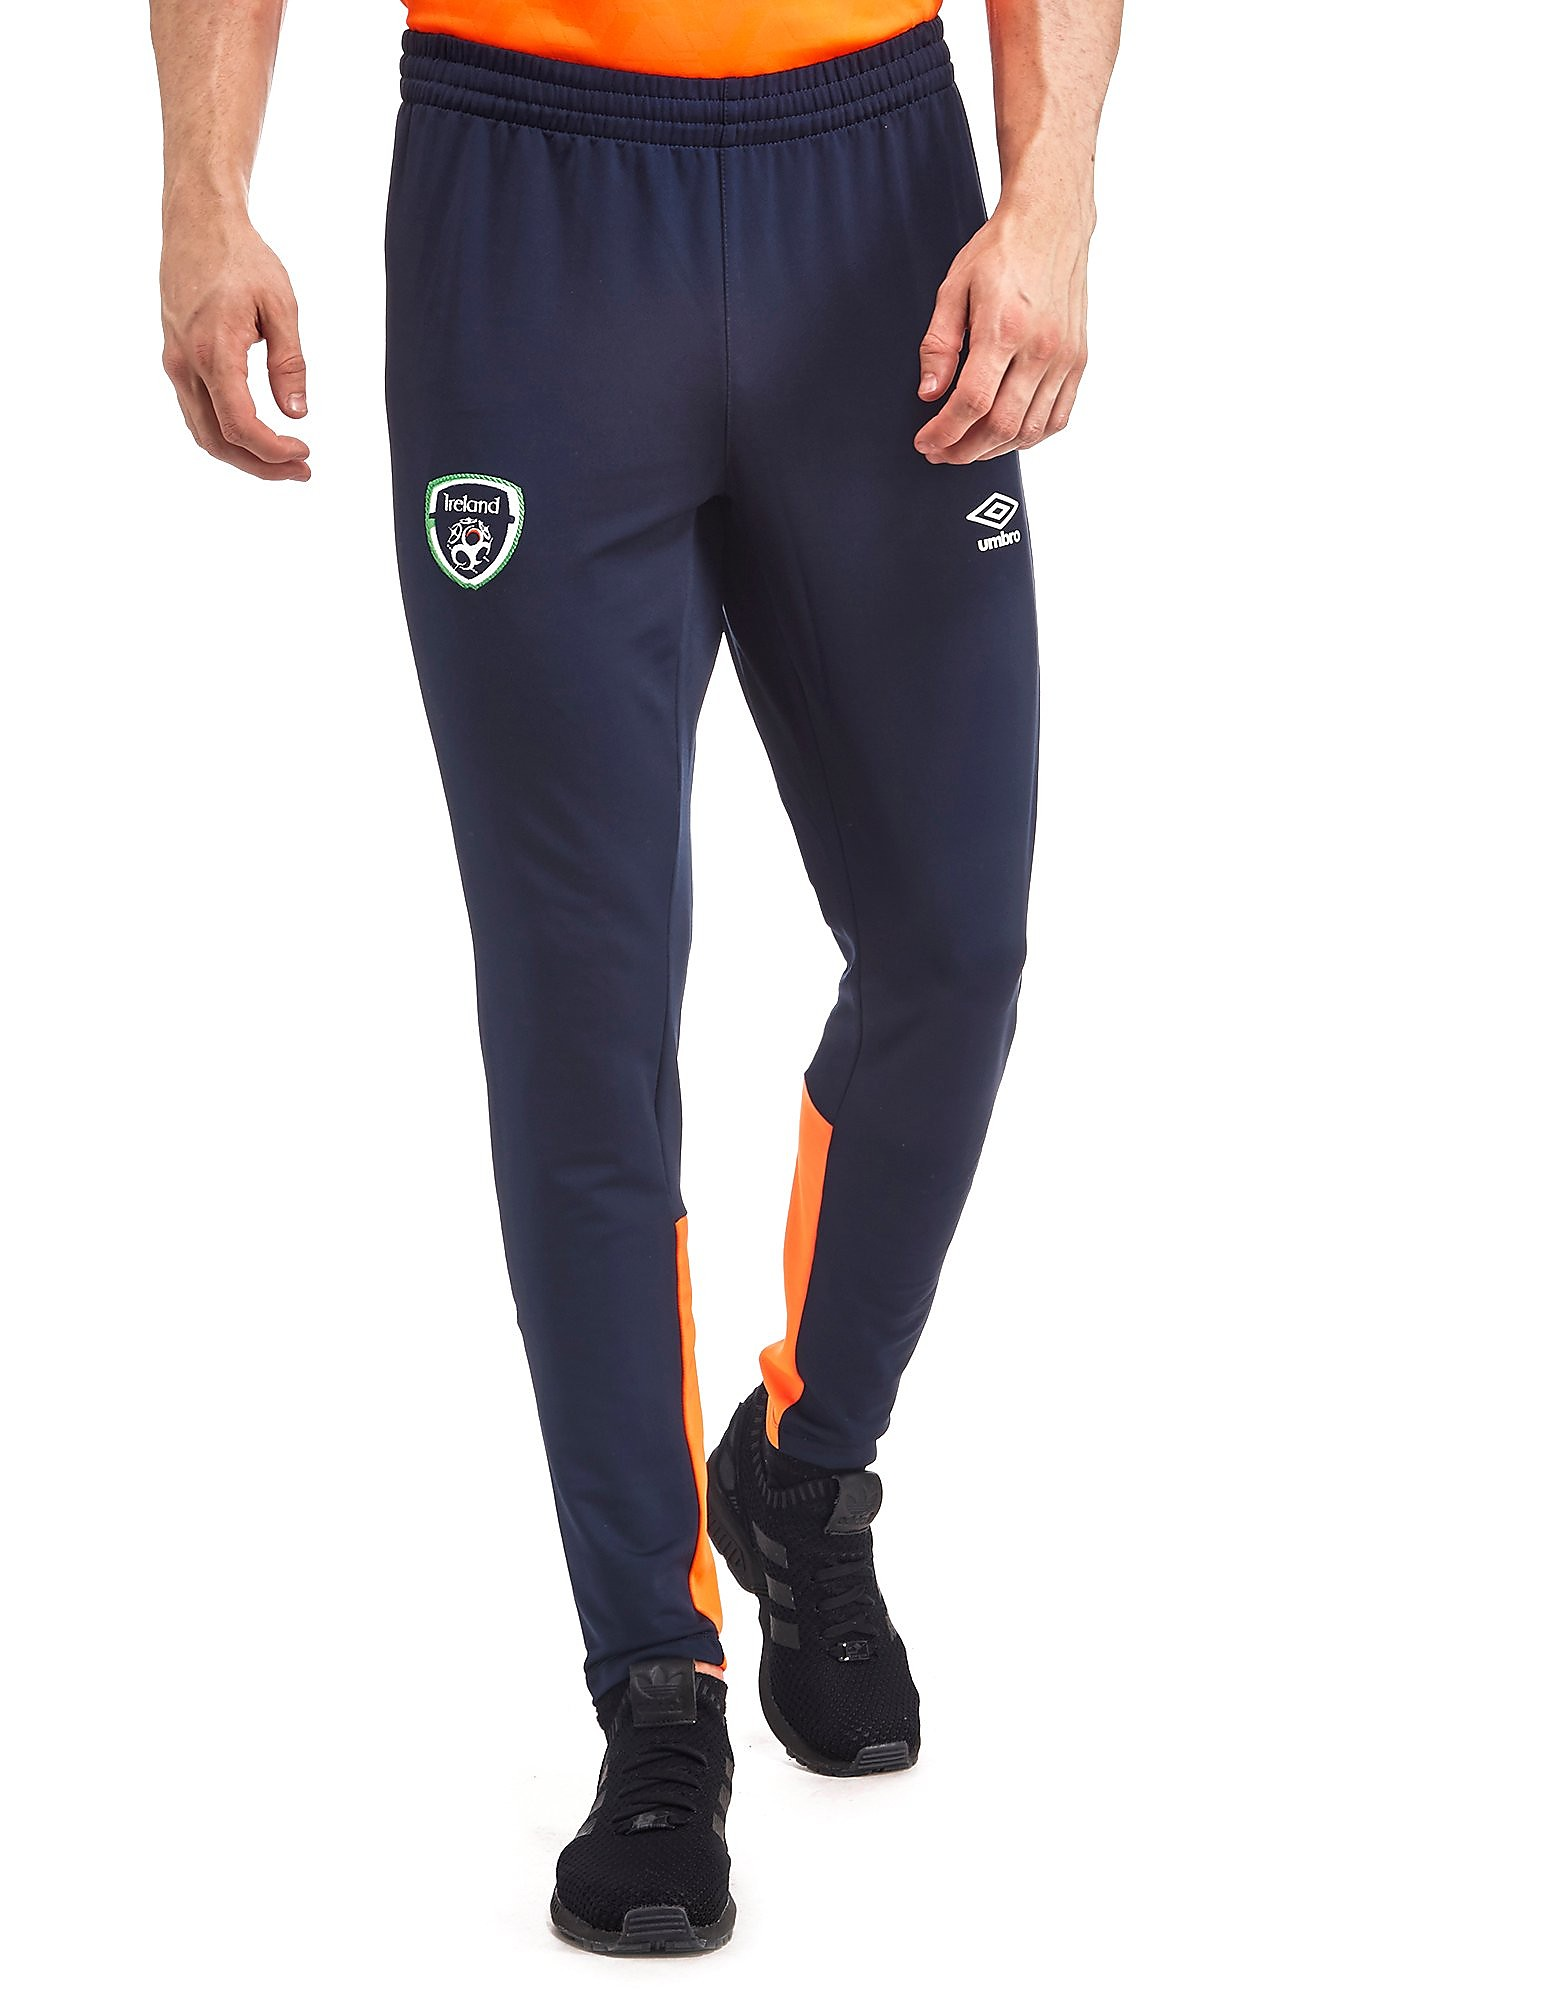 Umbro Republic of Ireland Training Pants